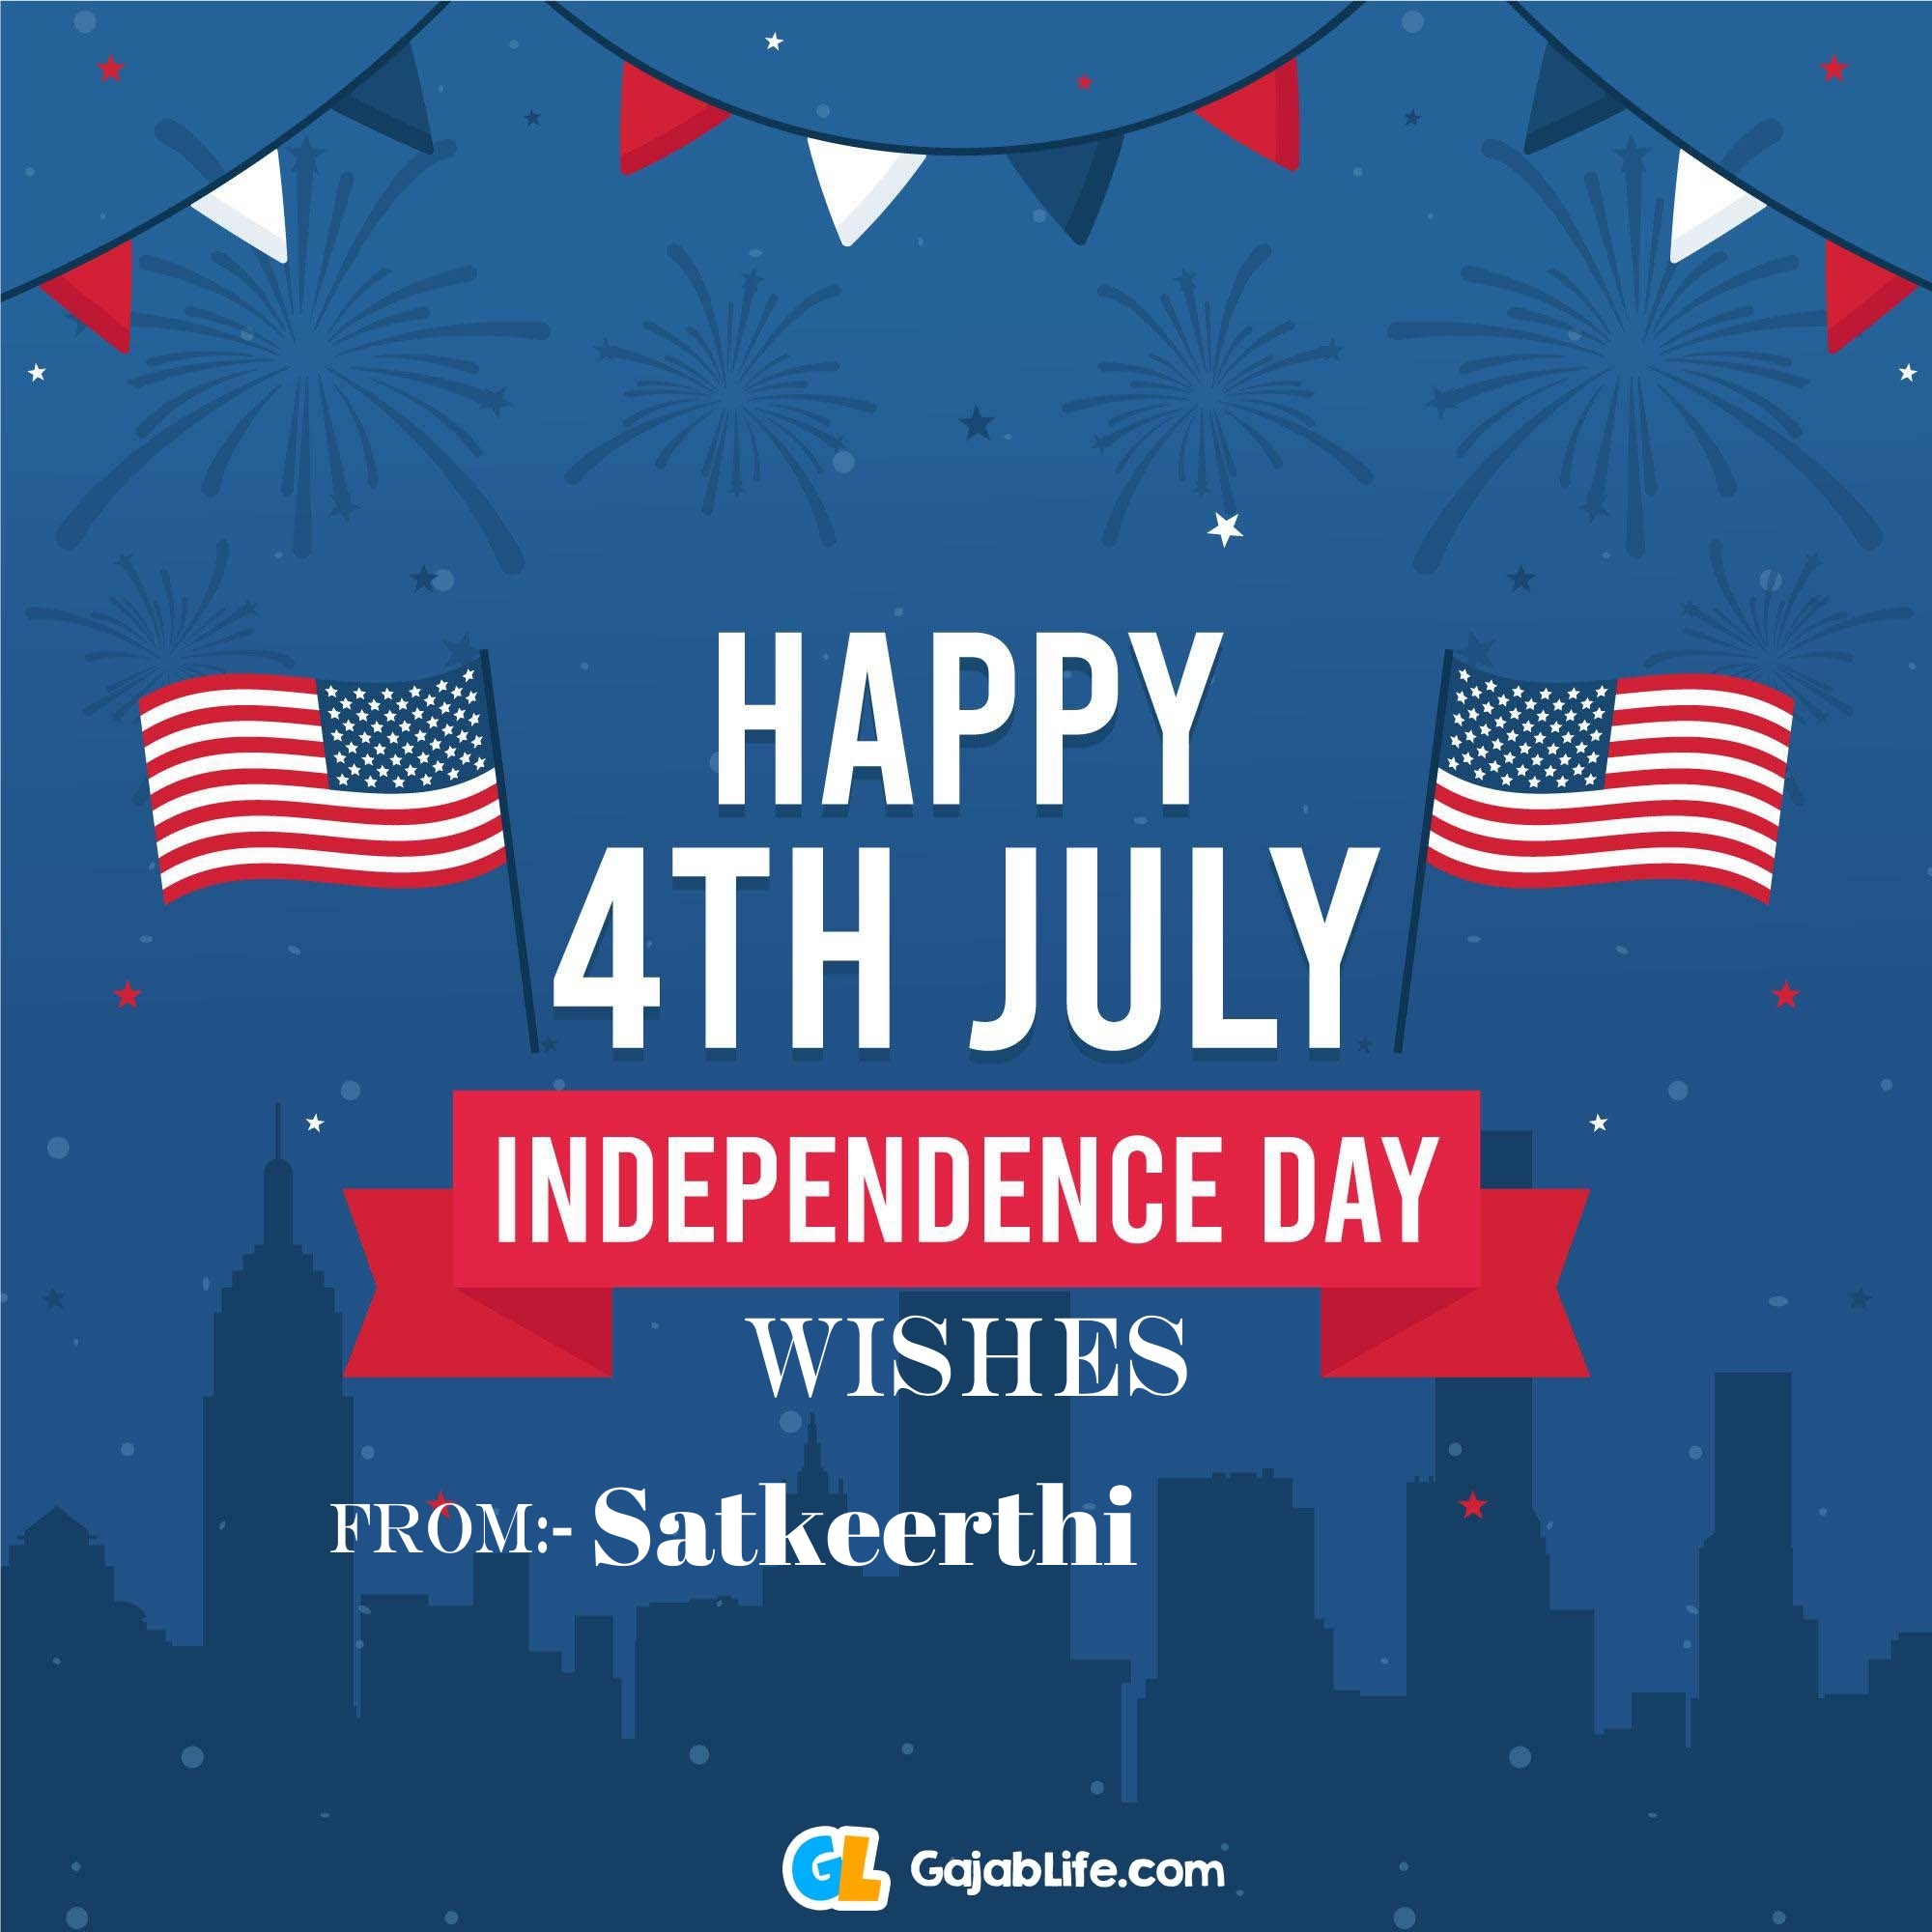 Satkeerthi happy independence day united states of america images